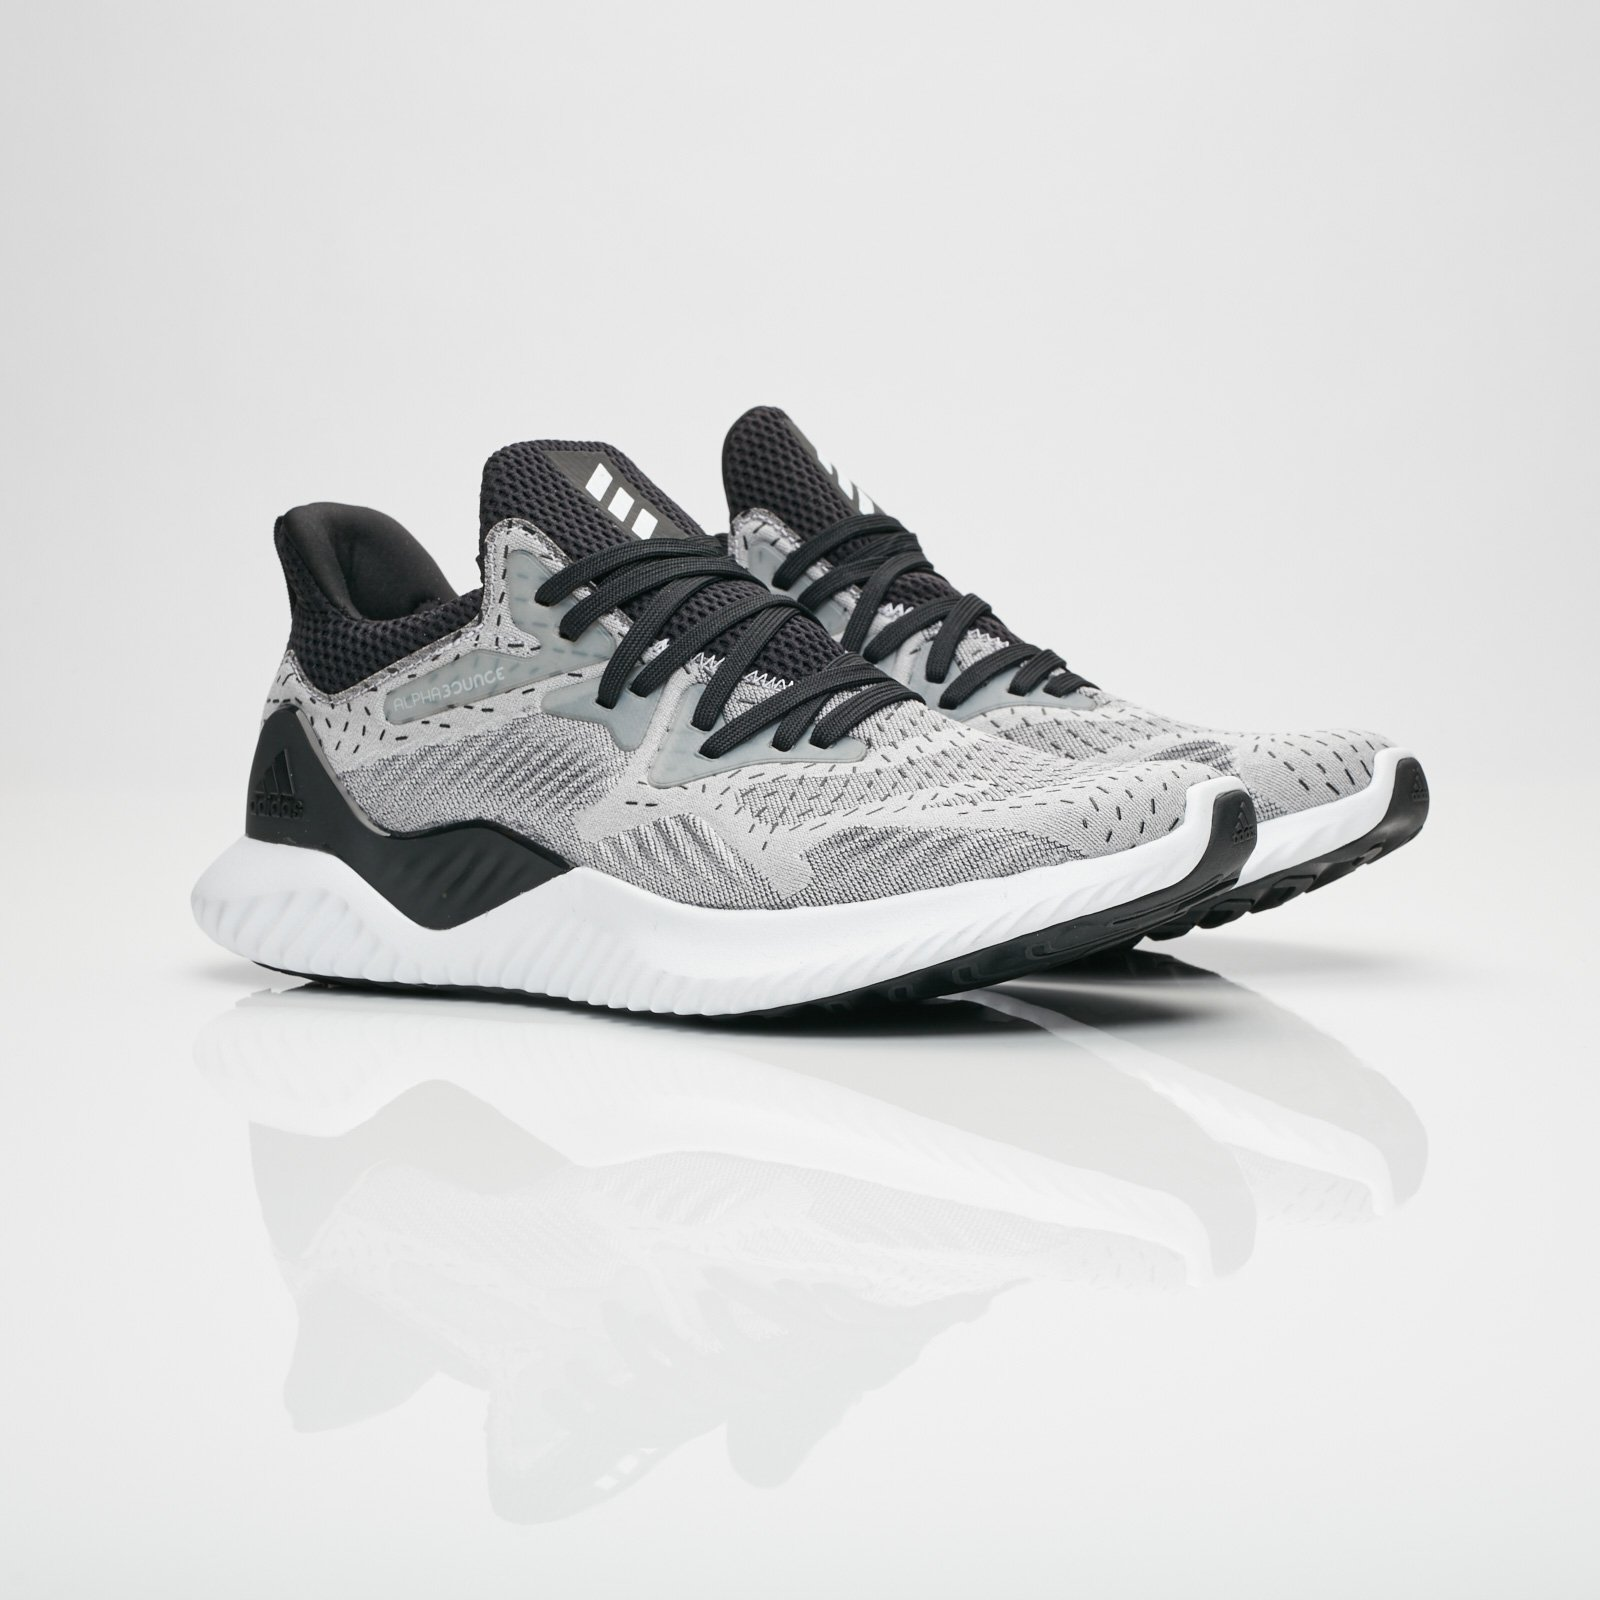 Alphabounce Beyond Forgedmesh Sneakers Adidas Sport Get Online Discount Popular kfkkt6b